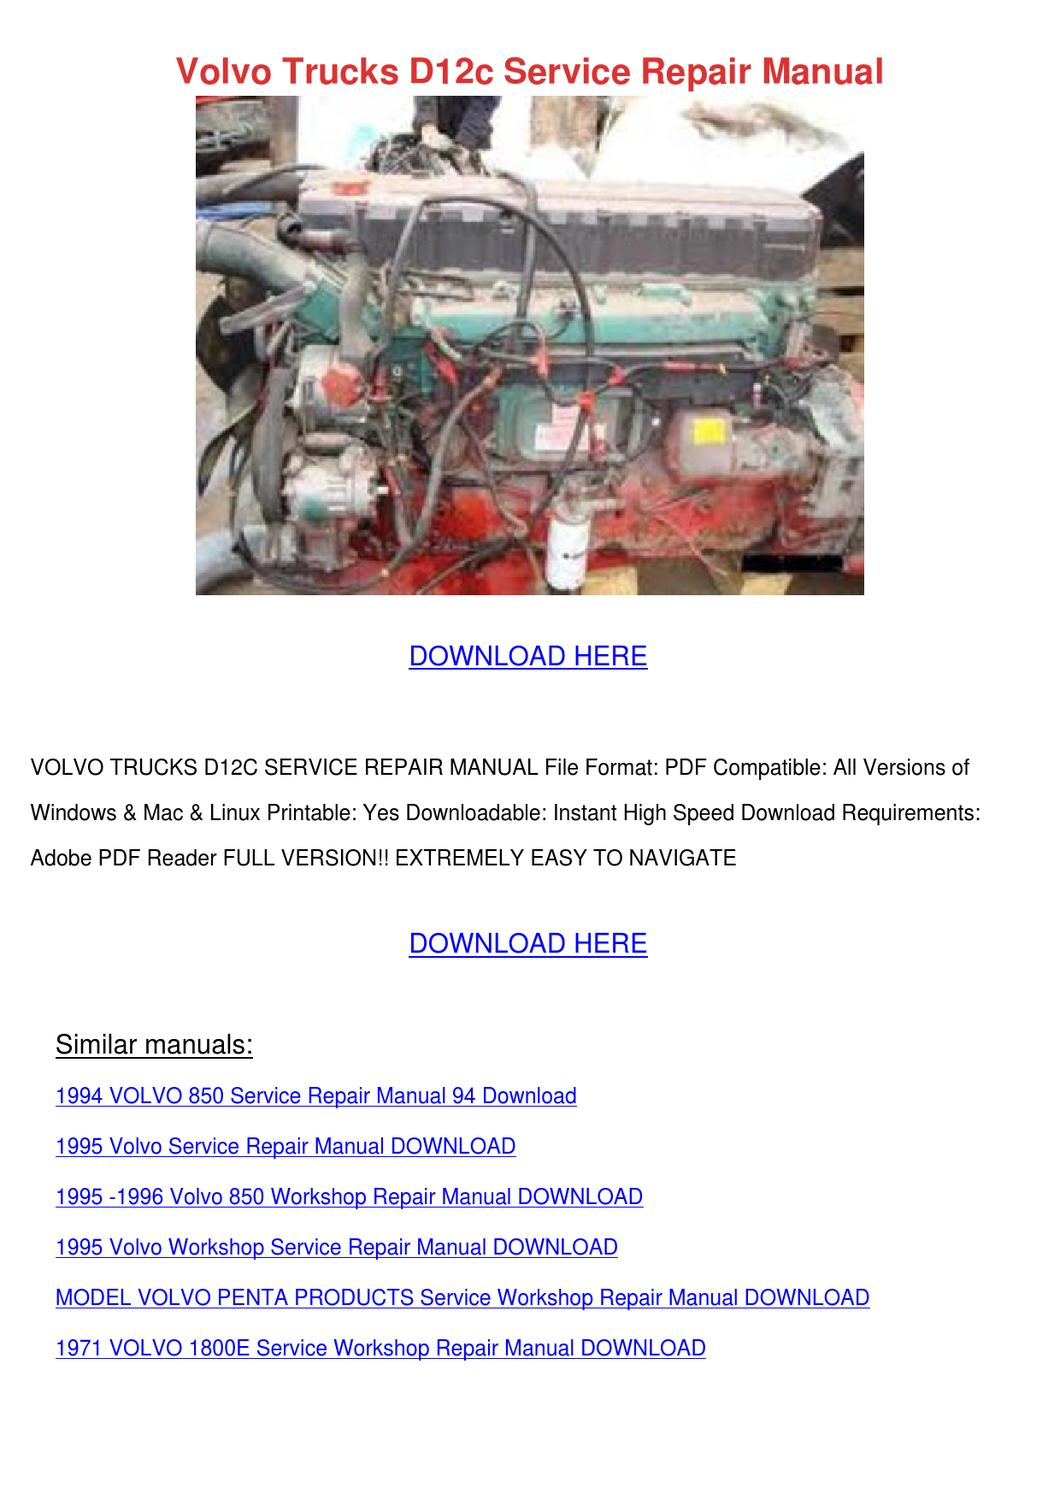 Volvo Trucks D12c Service Repair Manual by LouisaKerr - issuu on 440 bracket diagram, 440 engine diagram, 440 alternator diagram, 440 plug diagram,